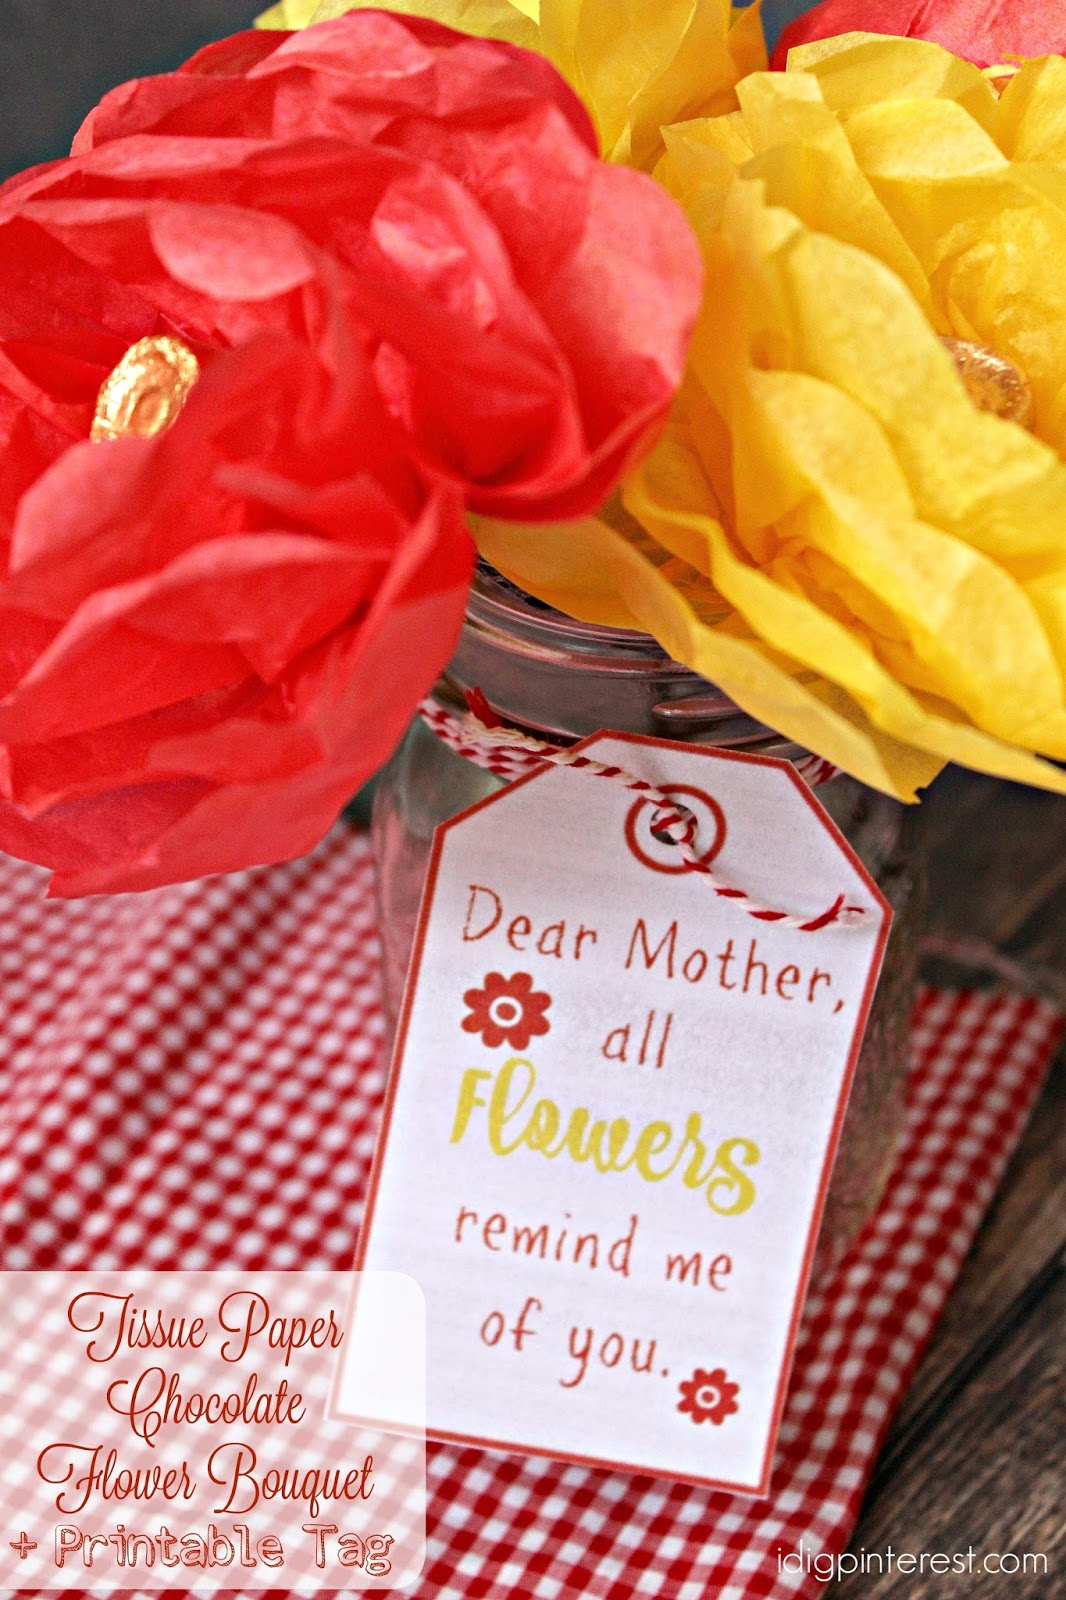 Tissue Paper Chocolate Flower Bouquet An Easy Diy Mother S Day Gift